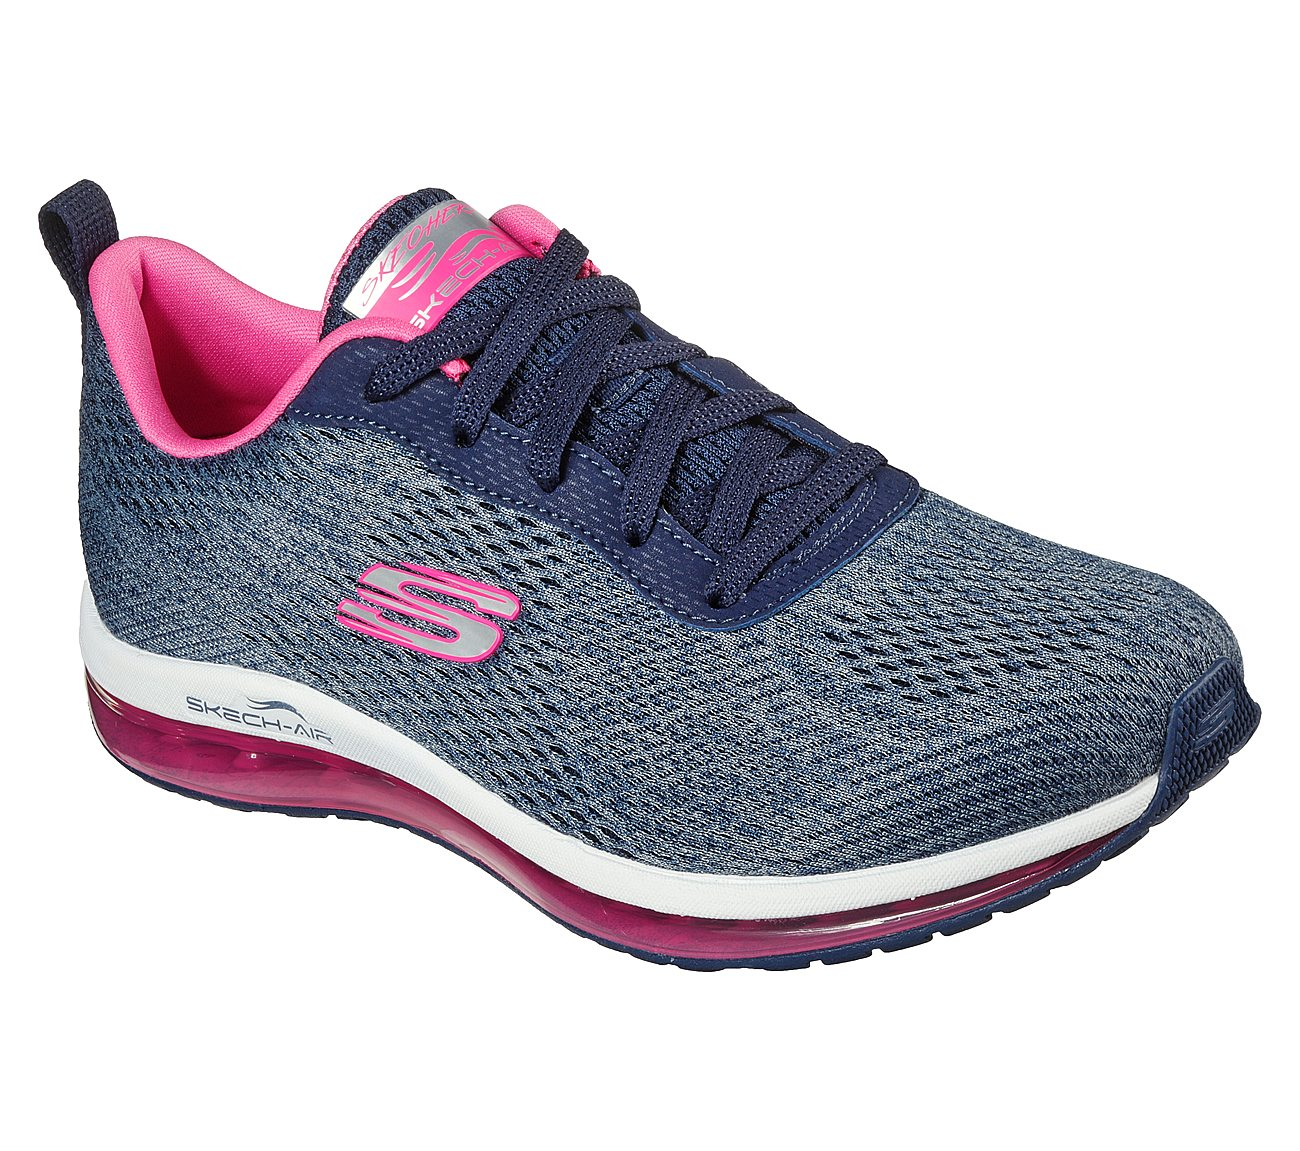 zapatillas de deporte para baratas nuevo diseño estilo distintivo Buy SKECHERS Skech-Air Element Sport Shoes